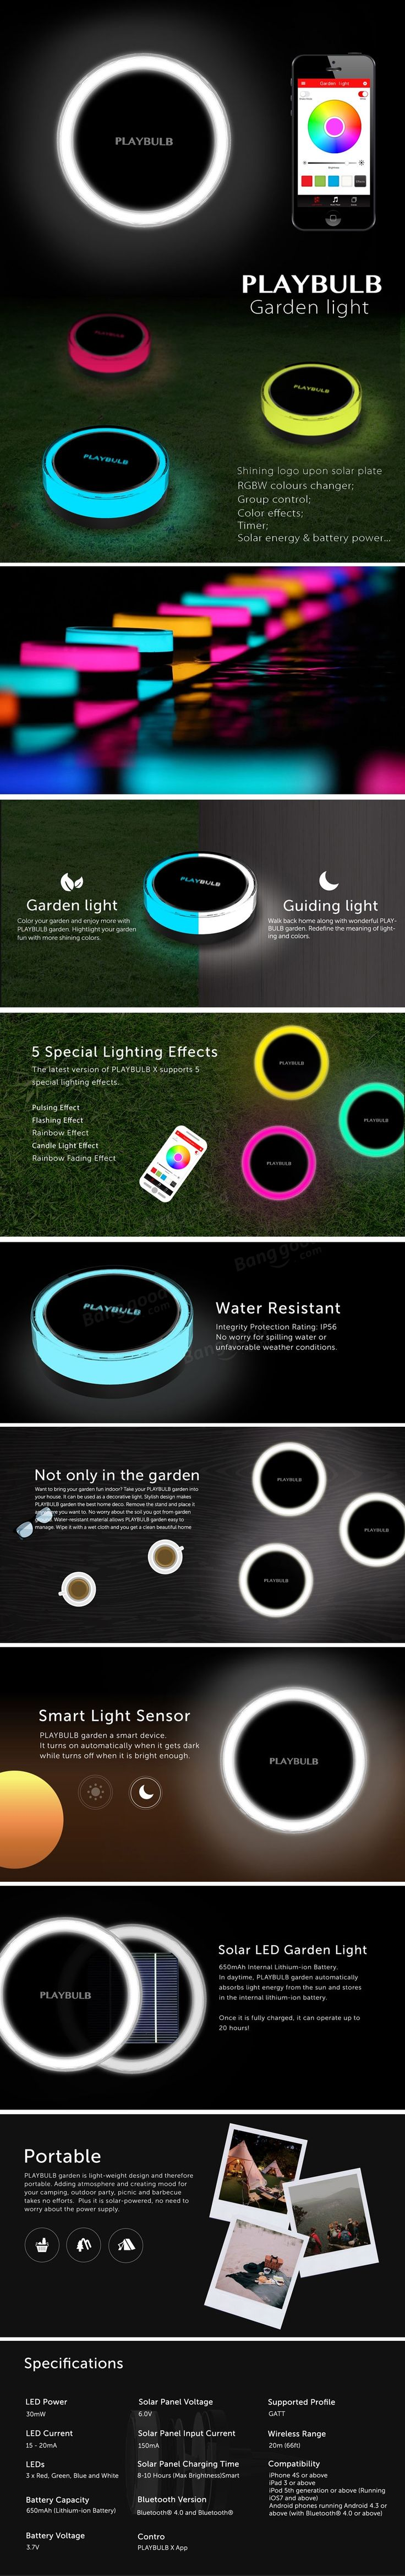 MIPOW PLAYBULB BTL400 Bluetooth Intelligent LED Solar Power Garden Light Outdoor Lawn Lamp at Banggood